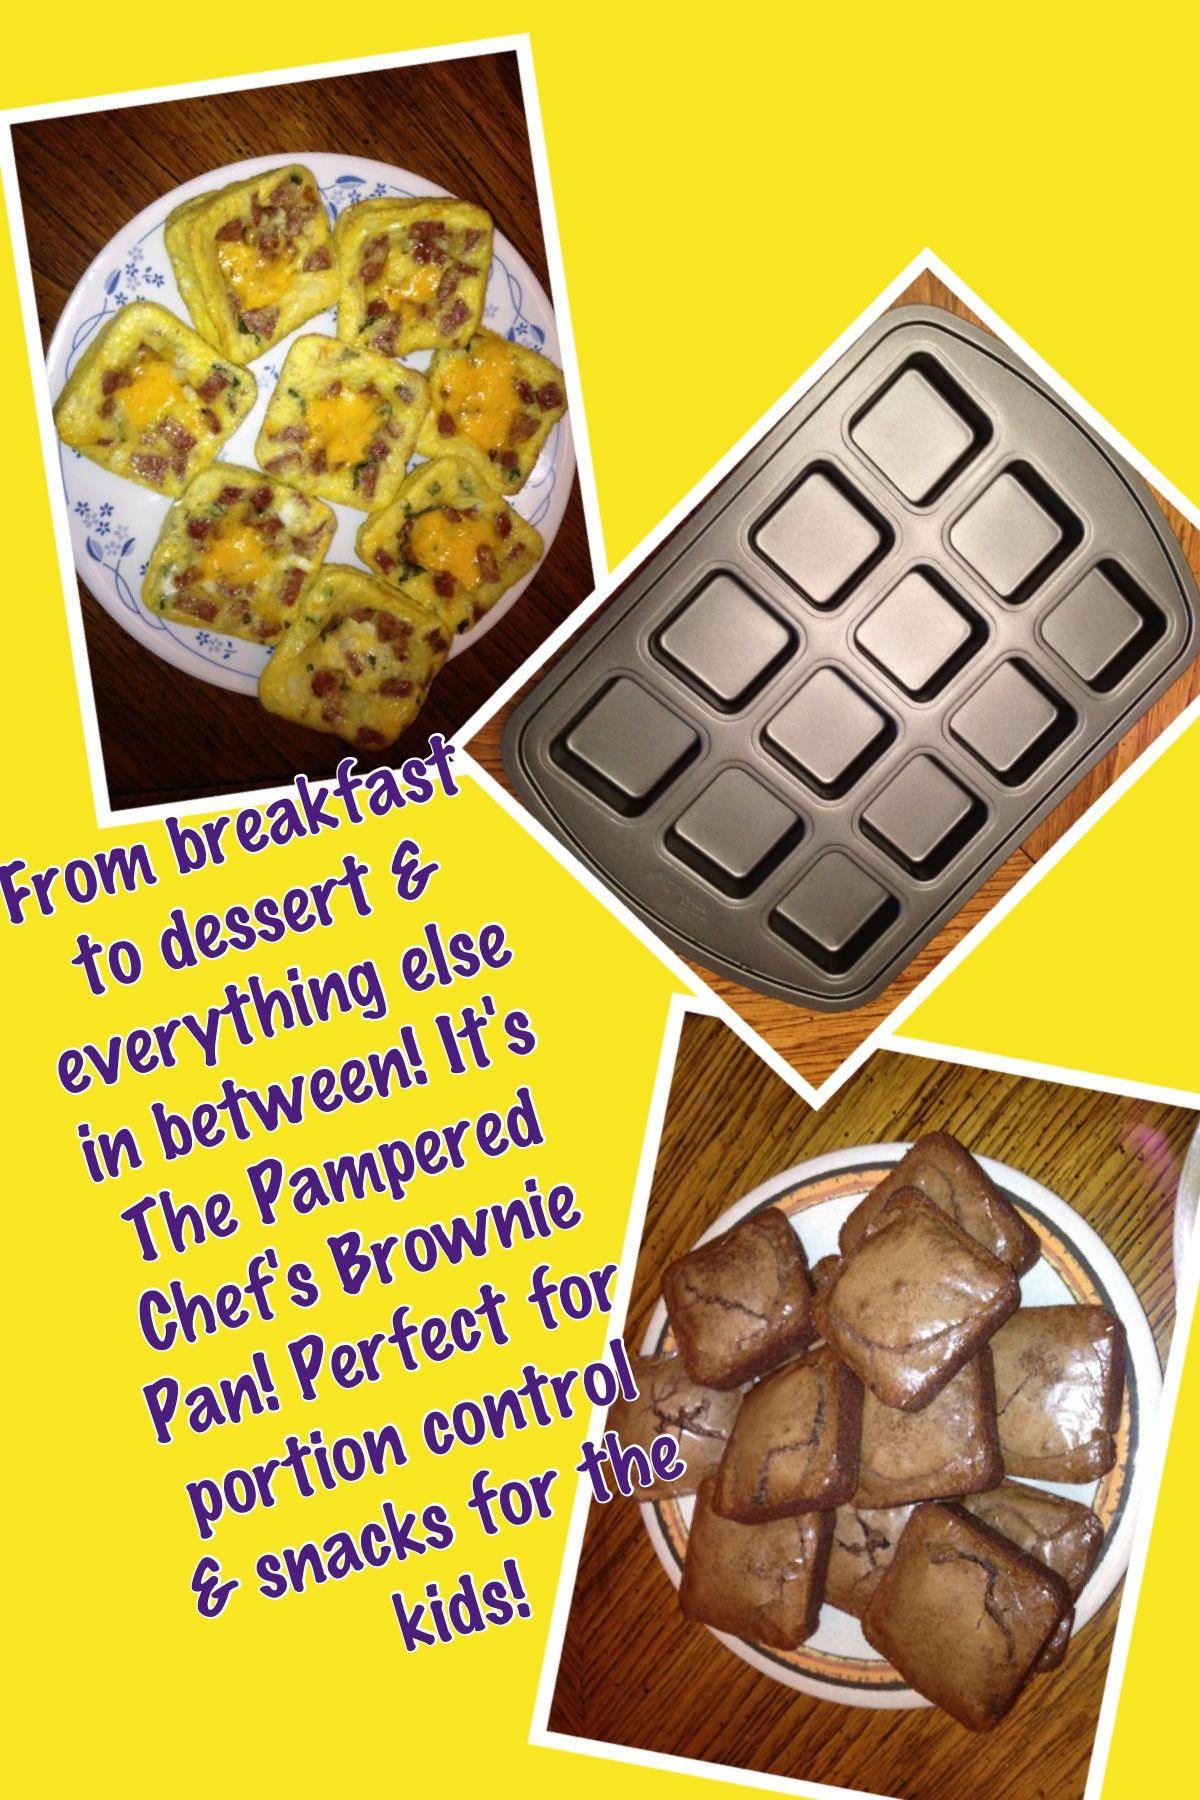 The Pampered Chef's Brownie pan. Www.pamperedchef.biz/kimberlyt